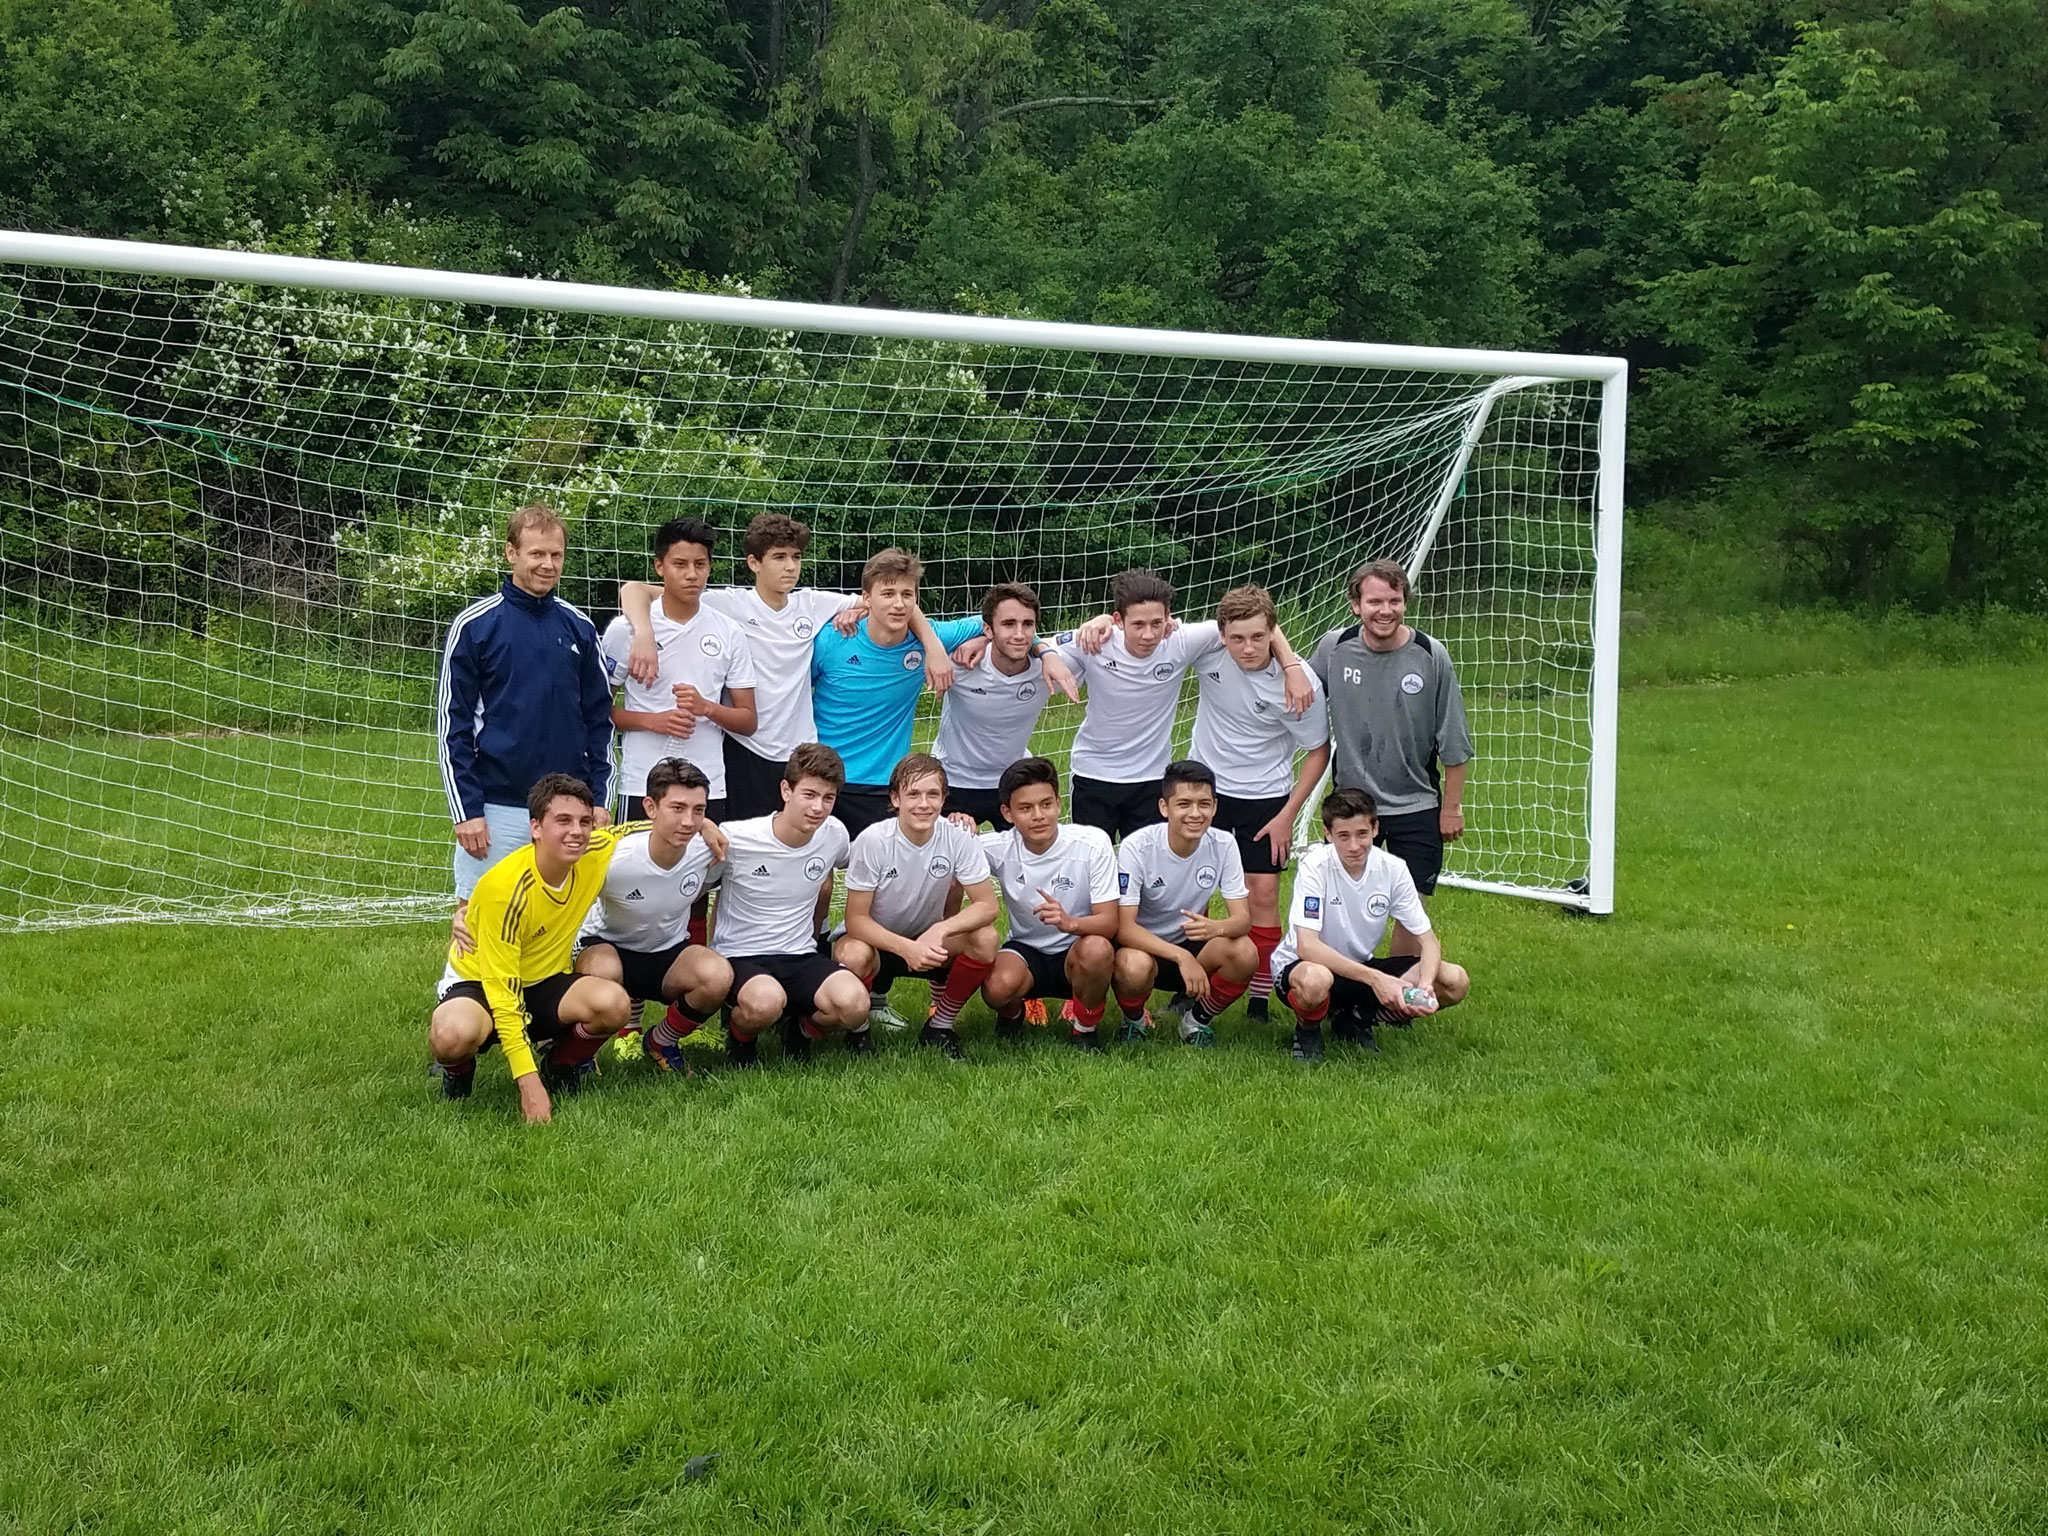 June 4, 2017 Jack's team won their division title in soccer today. Jack is in the blue top-he plays goalie. Congratulations to the team!